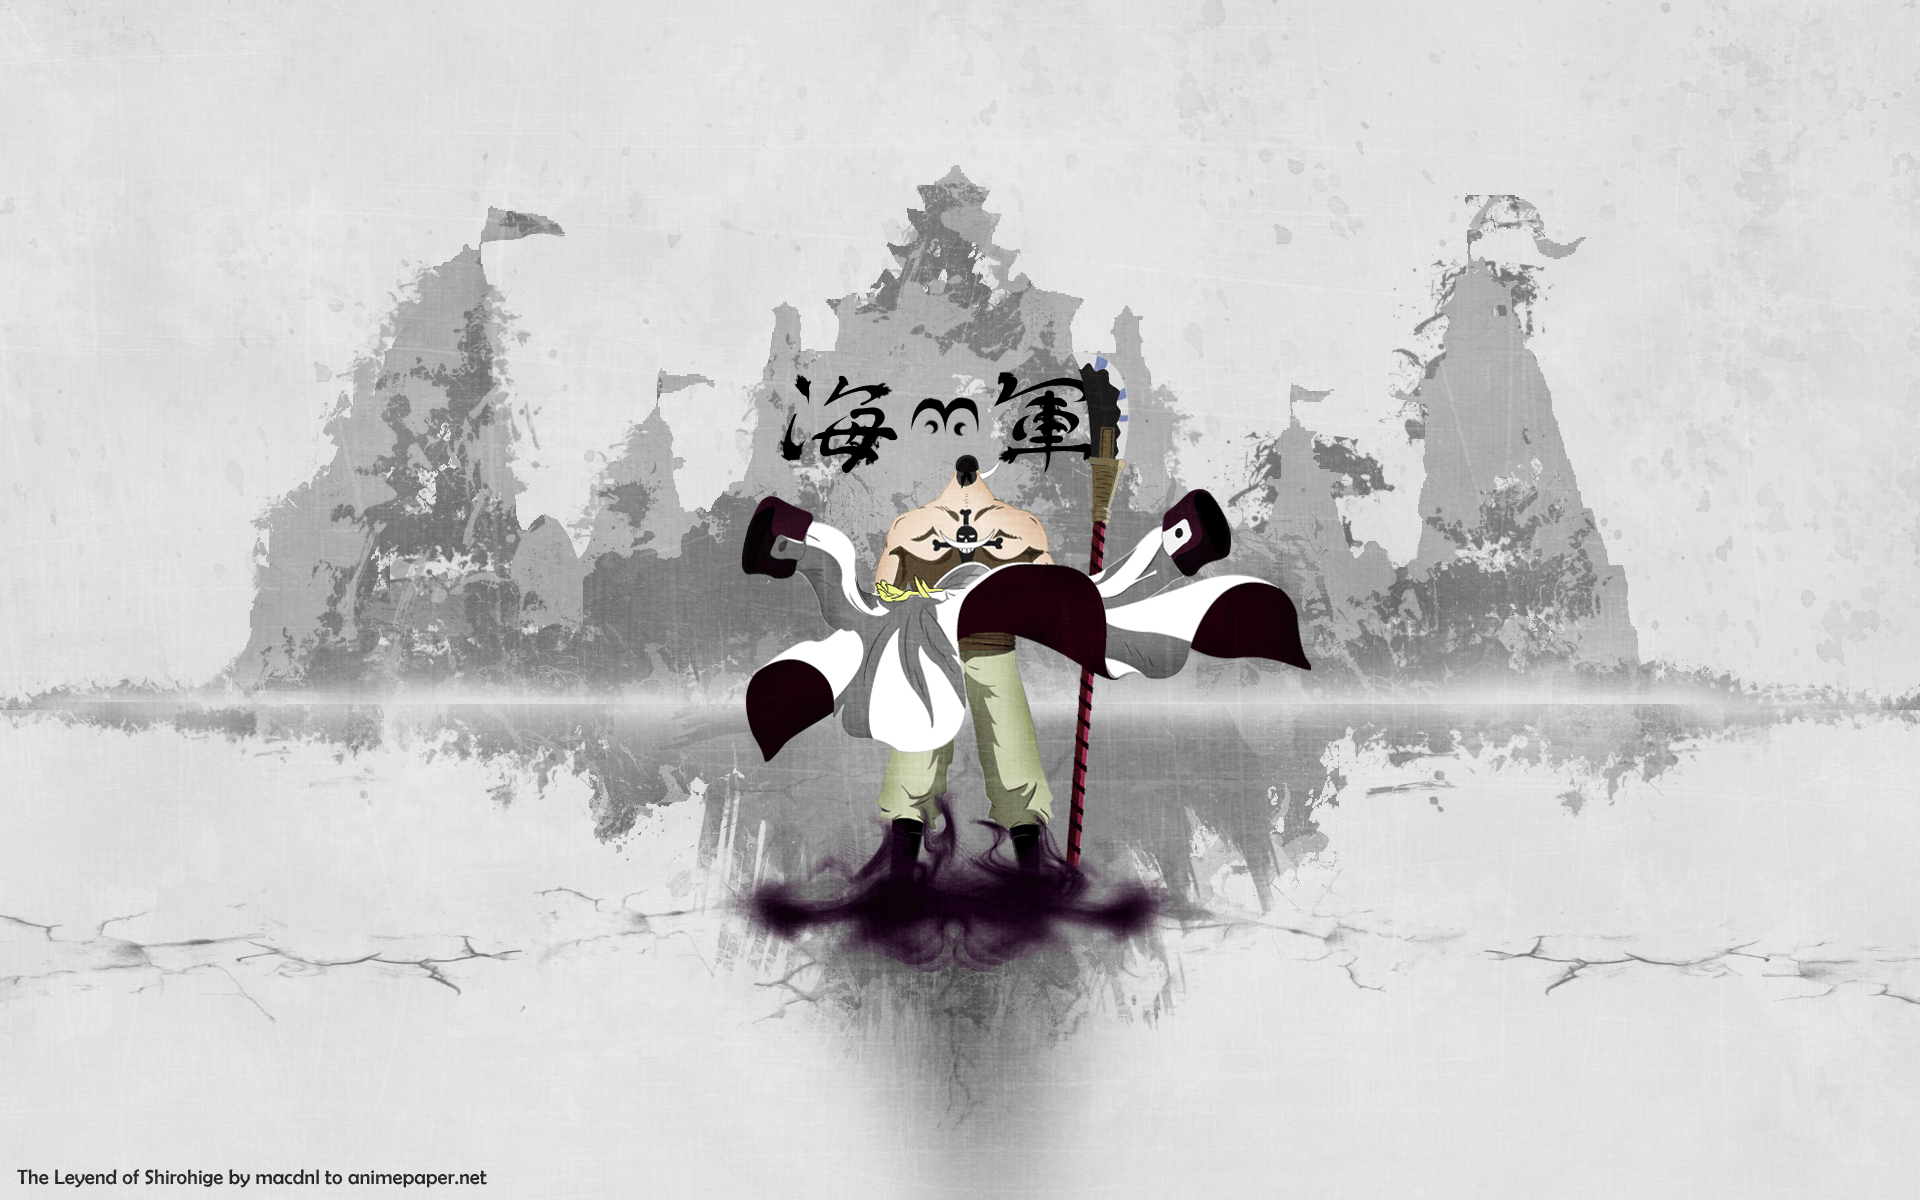 This whitebeard wallpapers is amazing : OnePiece